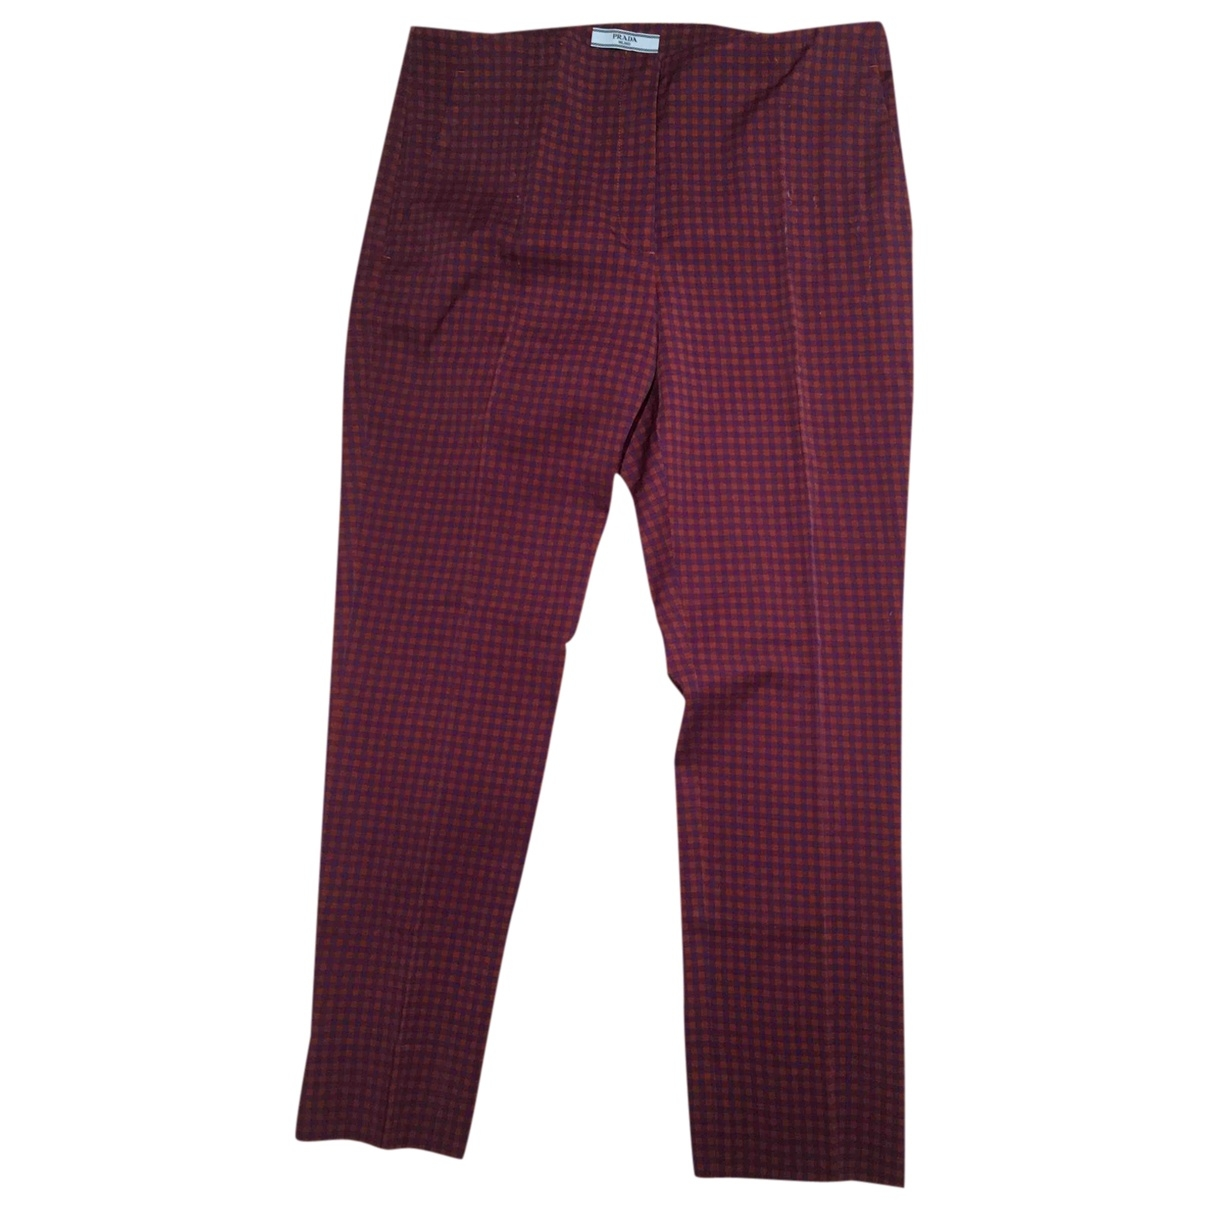 Prada \N Burgundy Cotton Trousers for Women 42 IT